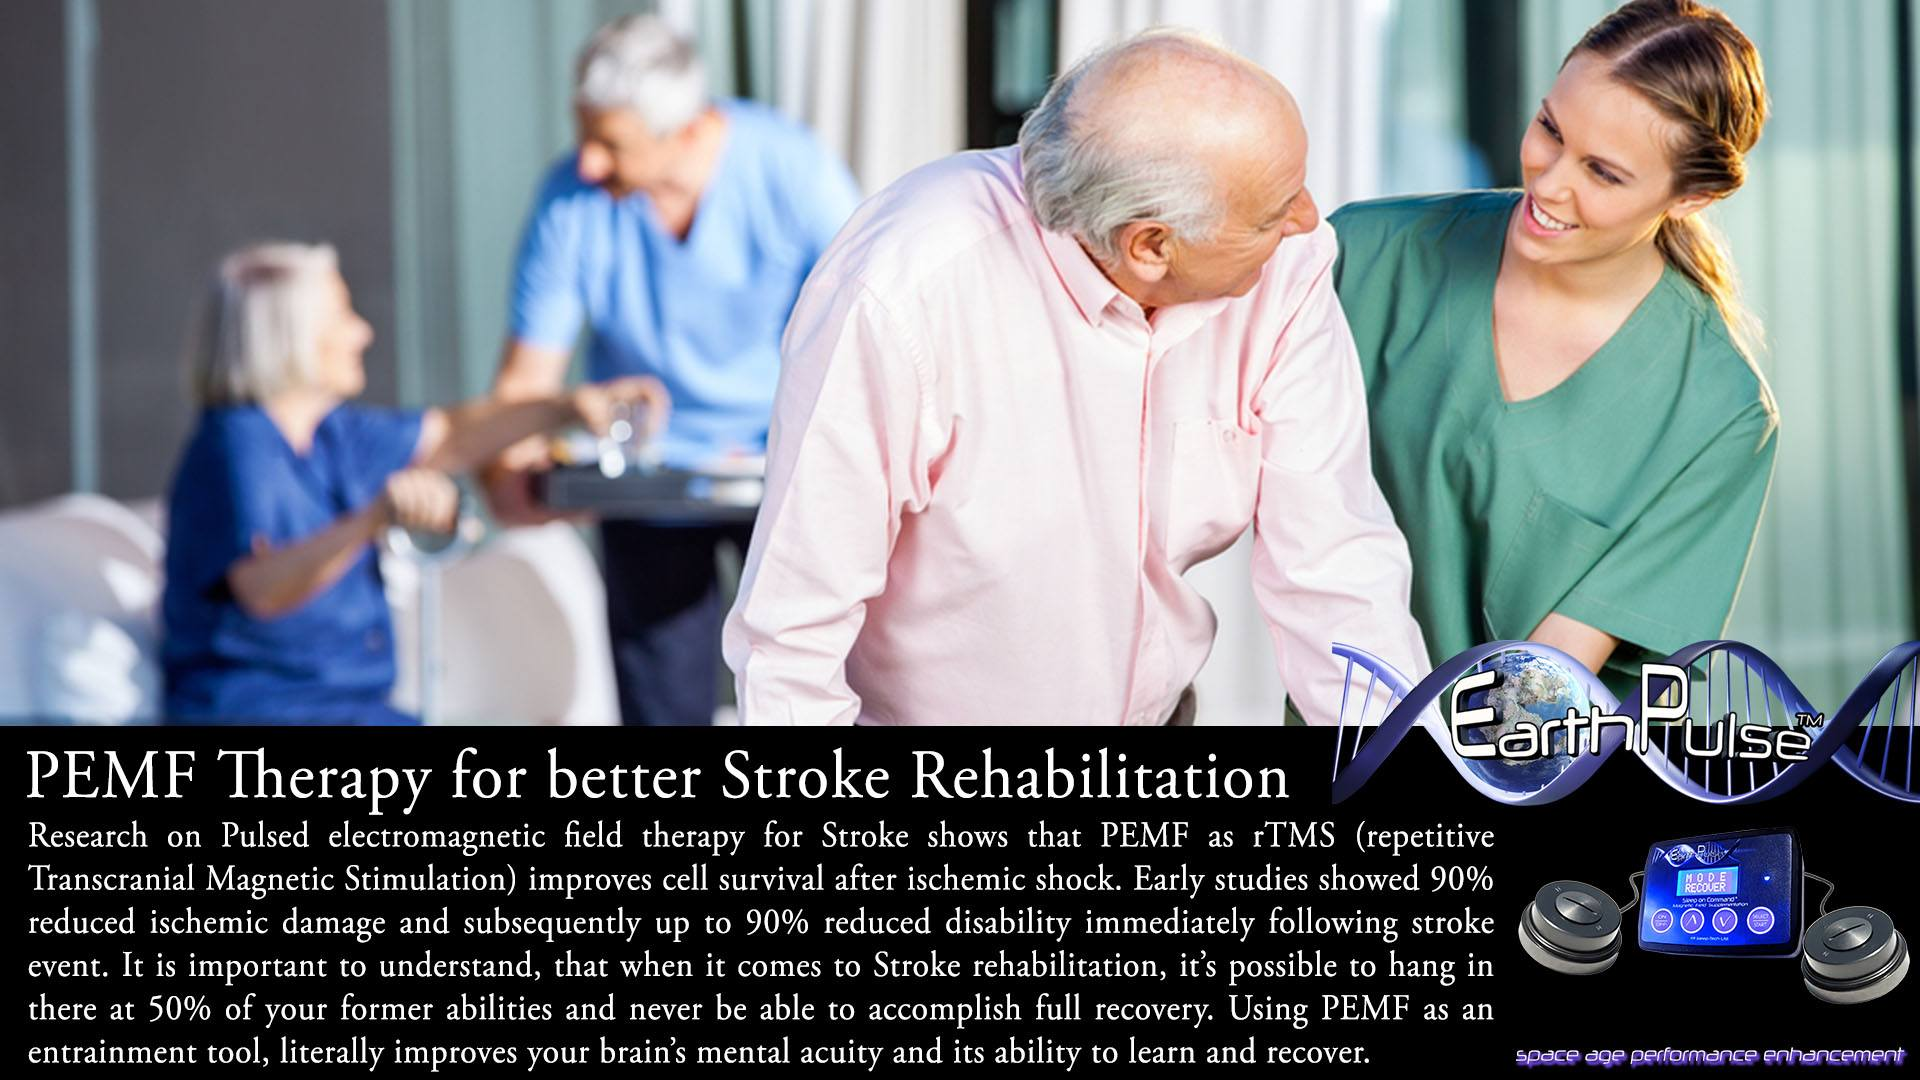 Magnetic Therapy Stroke: PEMF / rTMS Research